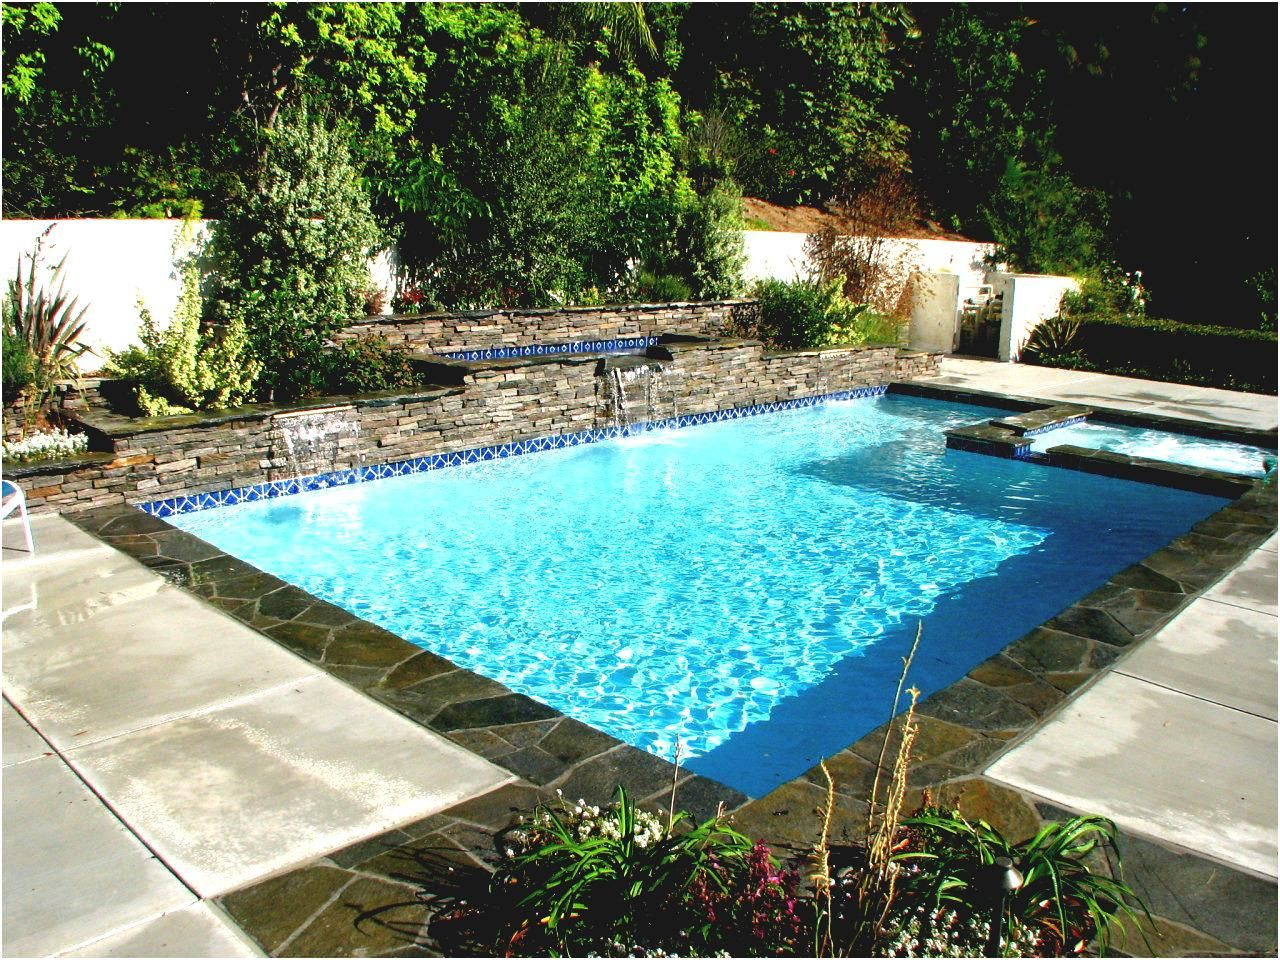 Backyard Inground Pool Designs Best Pools Ideas On Gartendeko Small Backyard Pools Backyard Pool Designs Pools For Small Yards